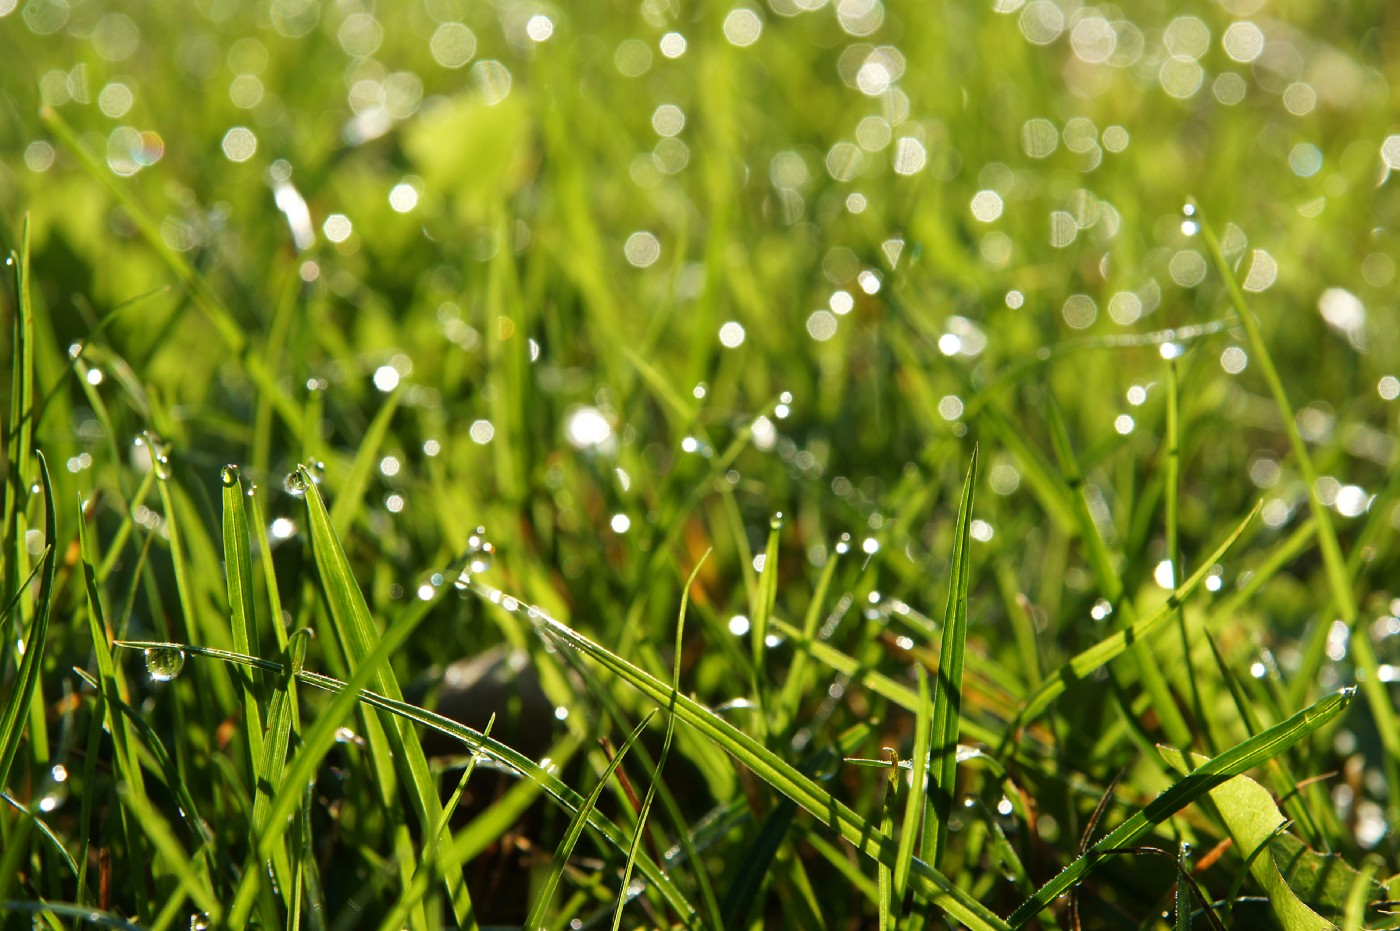 A field of sweetgrass covered in dew that is illuminated by morning light.